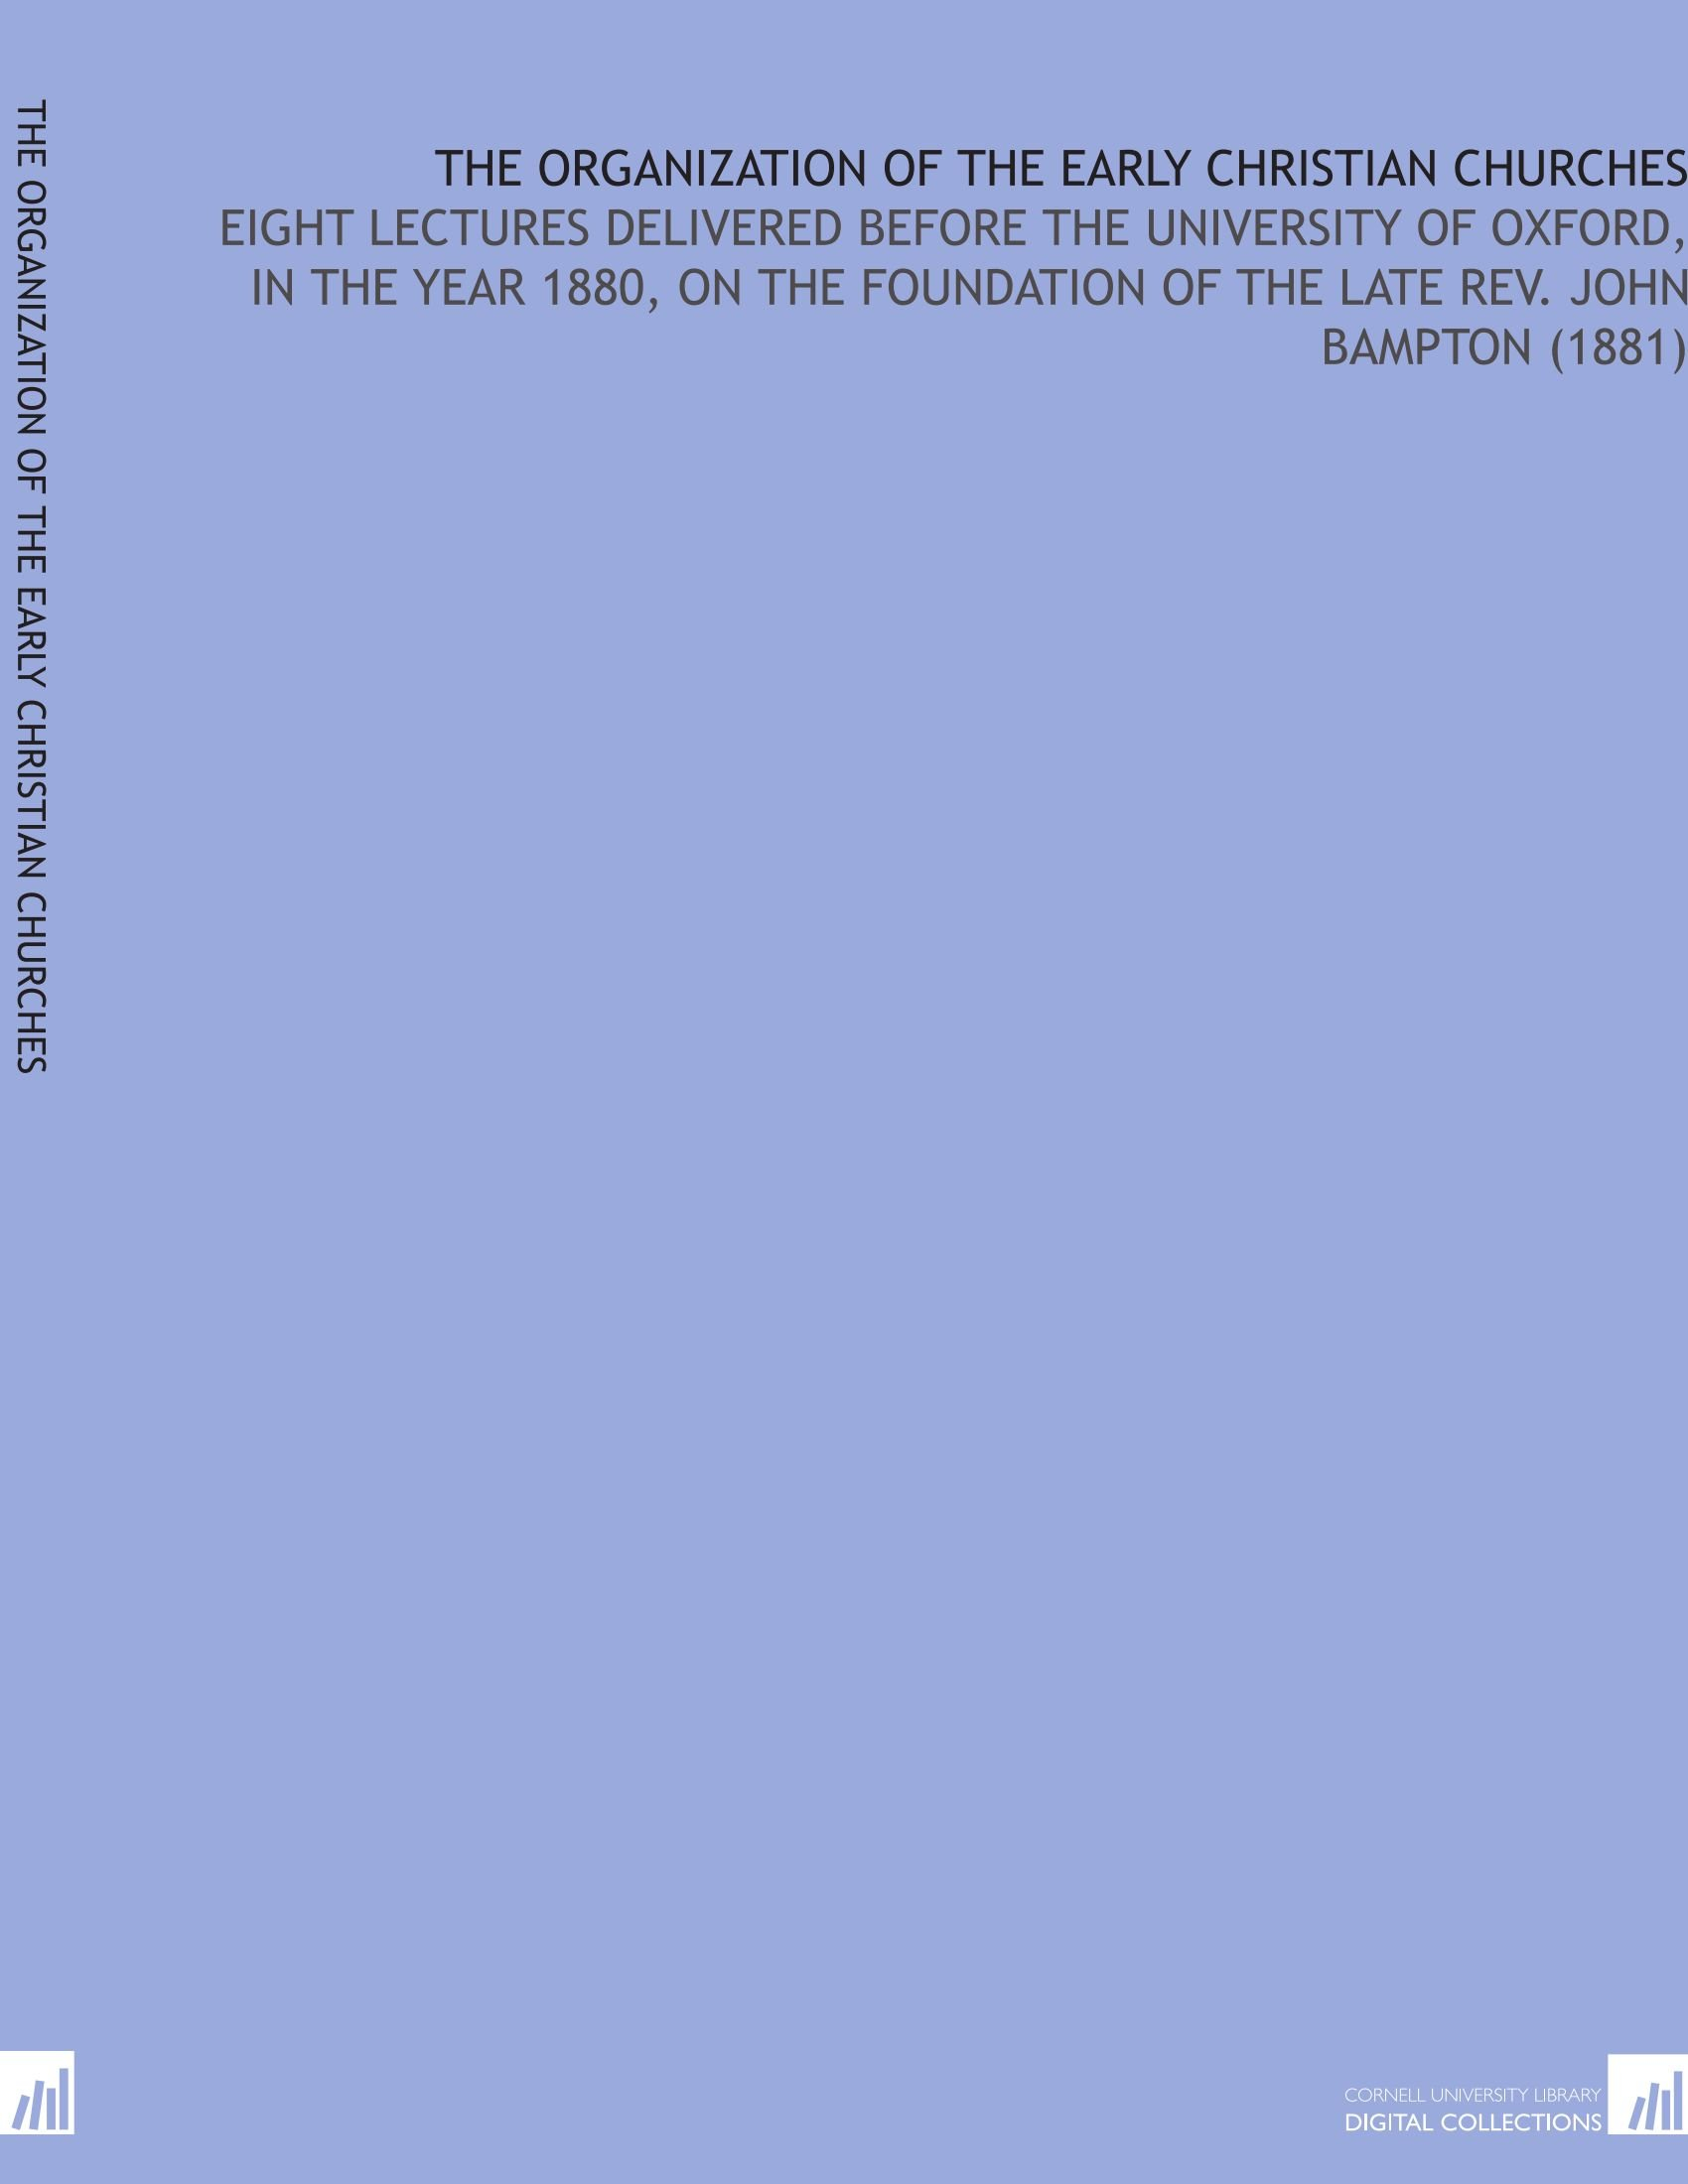 The Organization of the Early Christian Churches: Eight Lectures Delivered Before the University of Oxford, in the Year 1880, on the Foundation of the Late Rev. John Bampton (1881) PDF